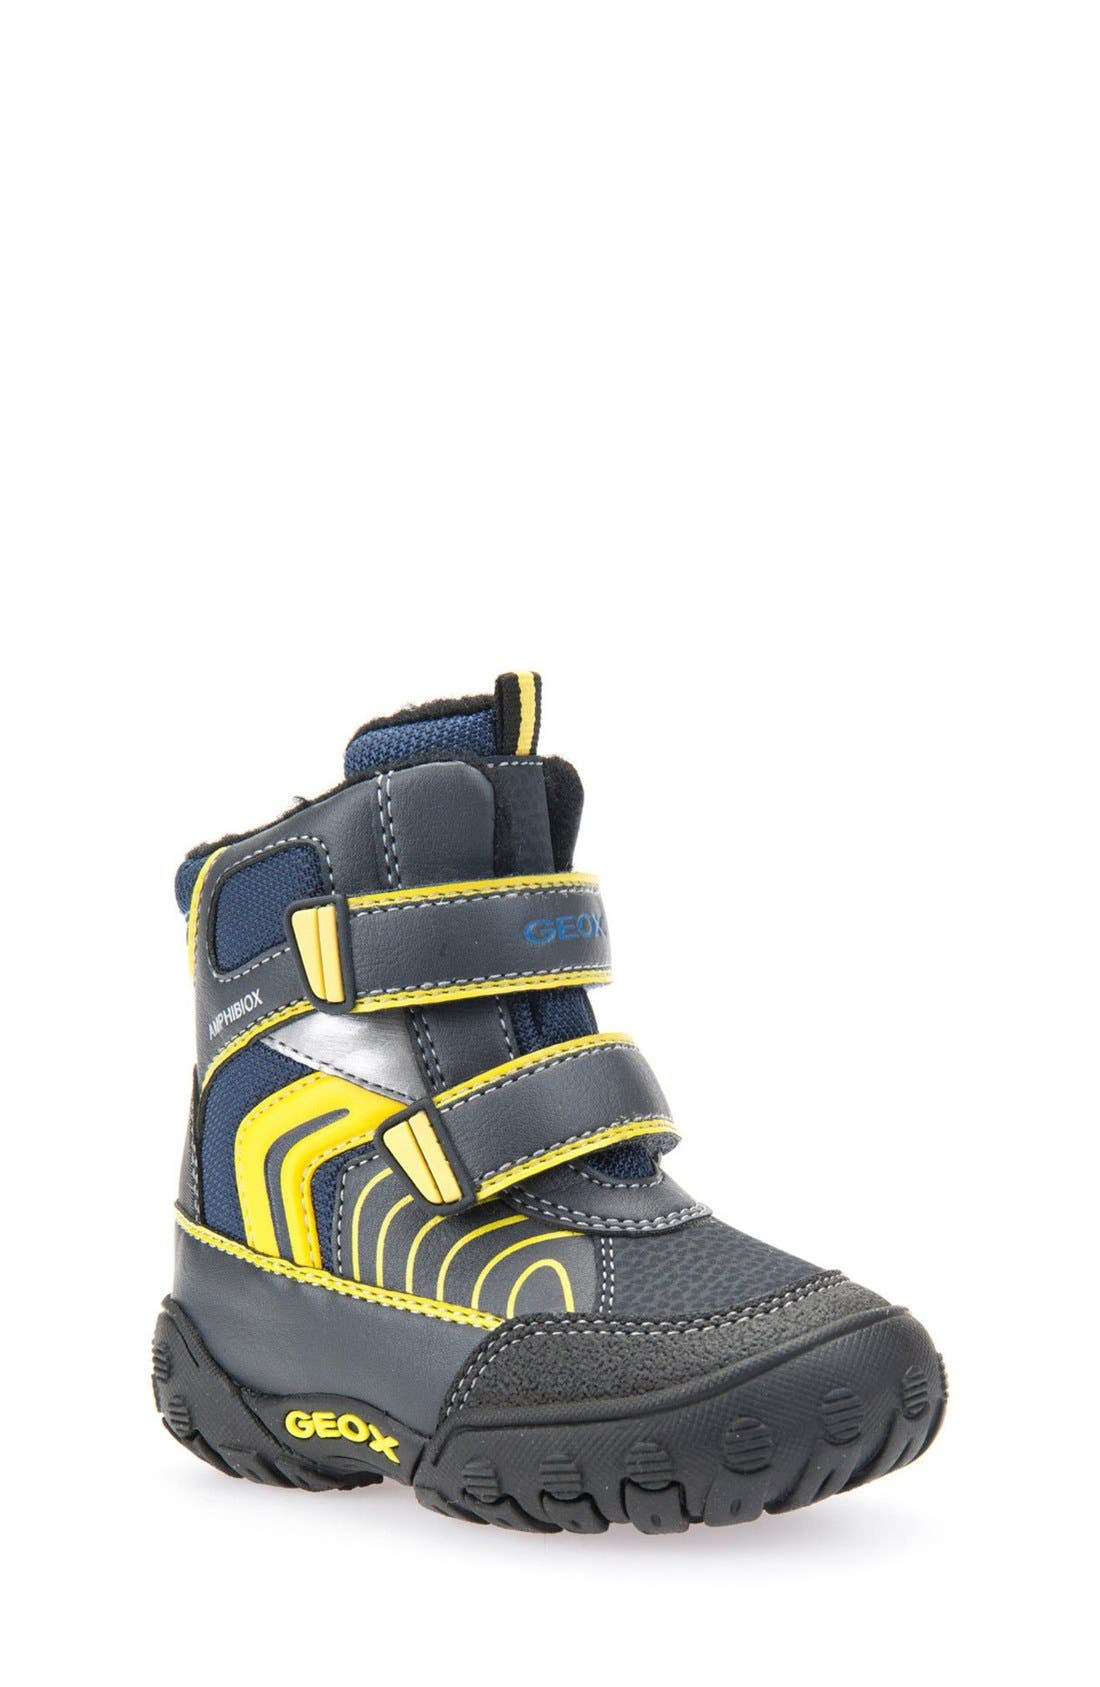 Geox 'Gulp' Waterproof Sneaker Boot (Walker & Toddler)